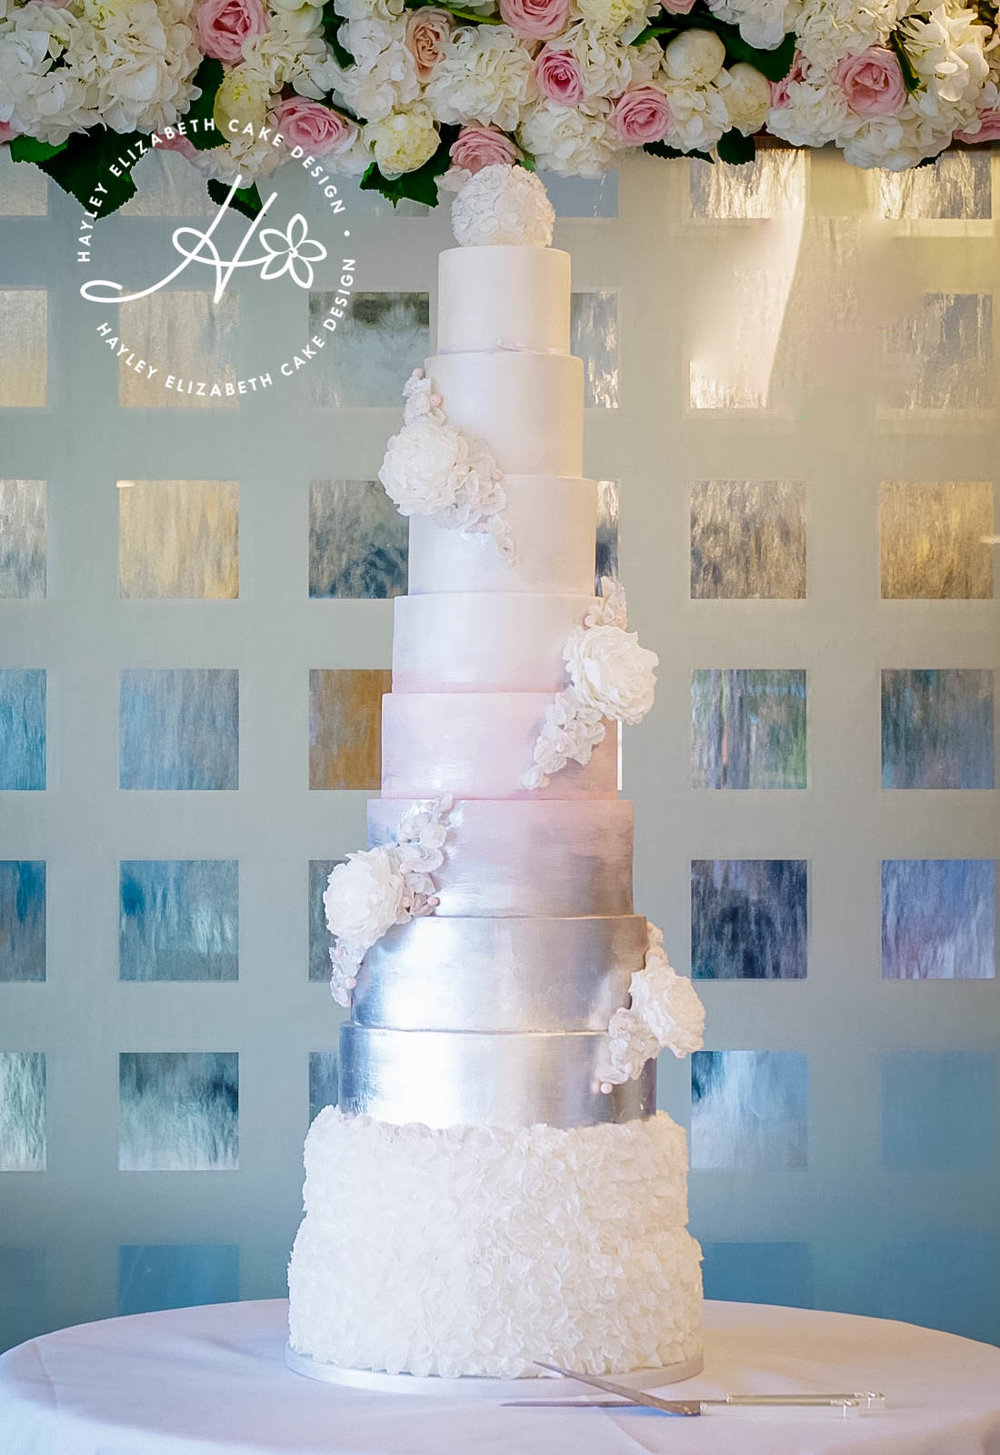 10-tier-wedding-cake-edible-silver-leaf.jpg